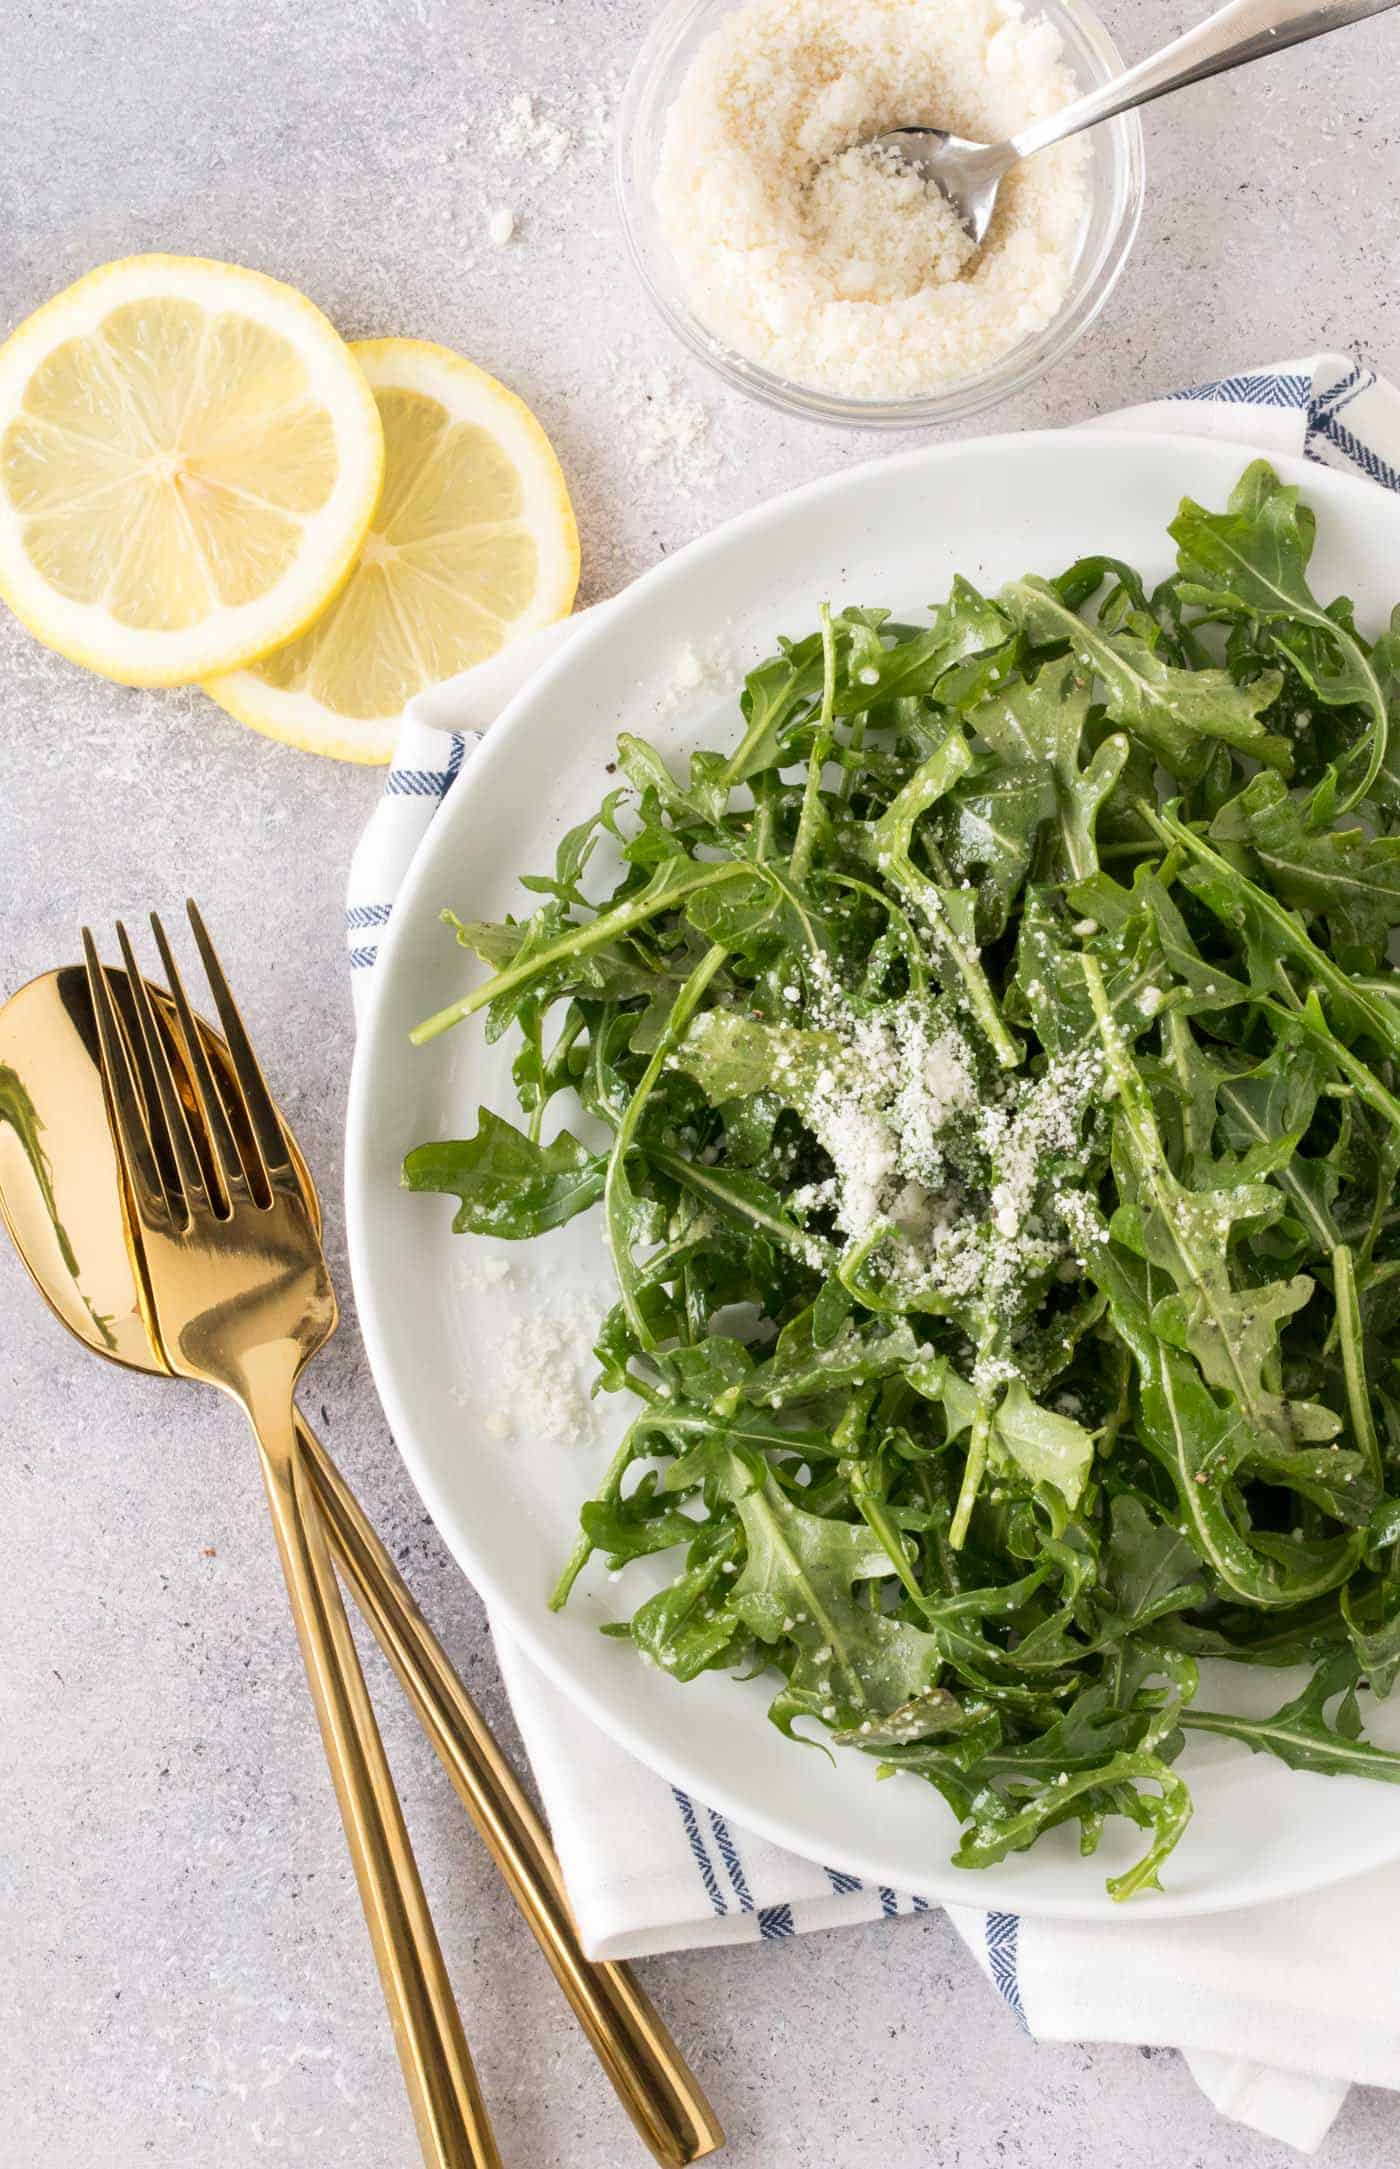 Large white bowl filled with Arugula Salad with Lemon Vinaigrette. Garnished with freshly shaved parmesan cheese and lemon wedges